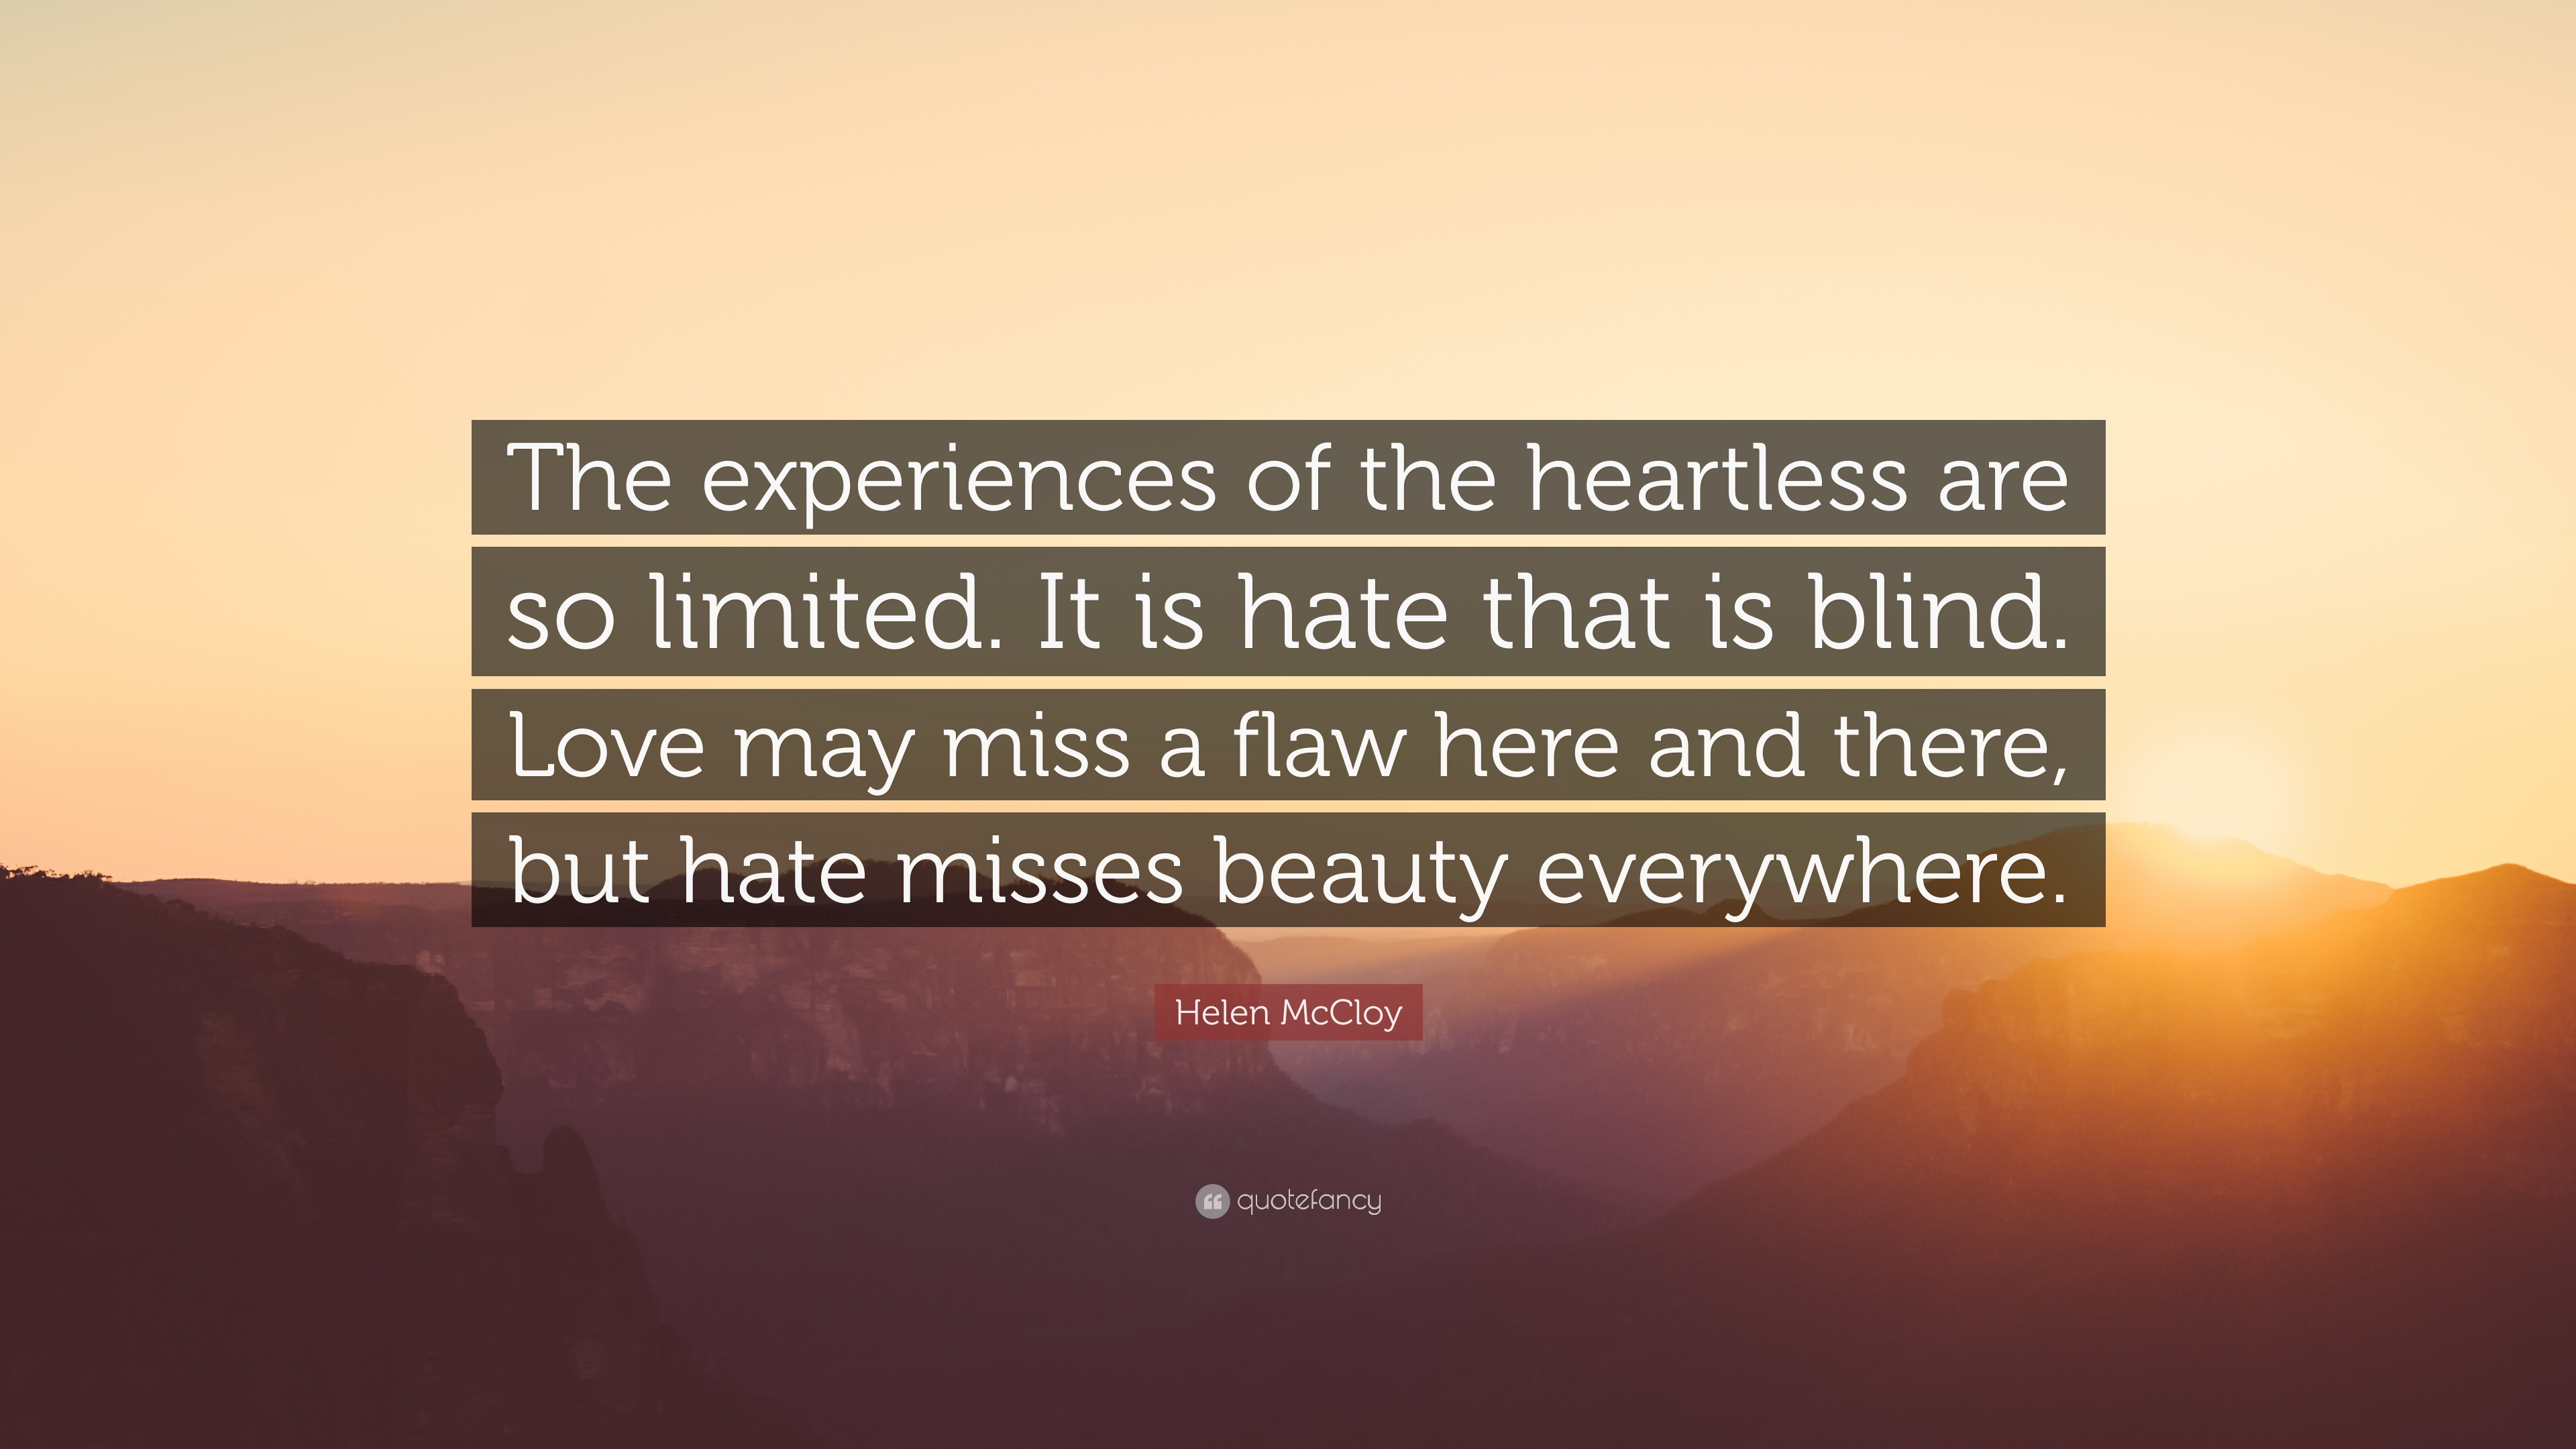 High Quality Helen McCloy Quote: U201cThe Experiences Of The Heartless Are So Limited. It Is